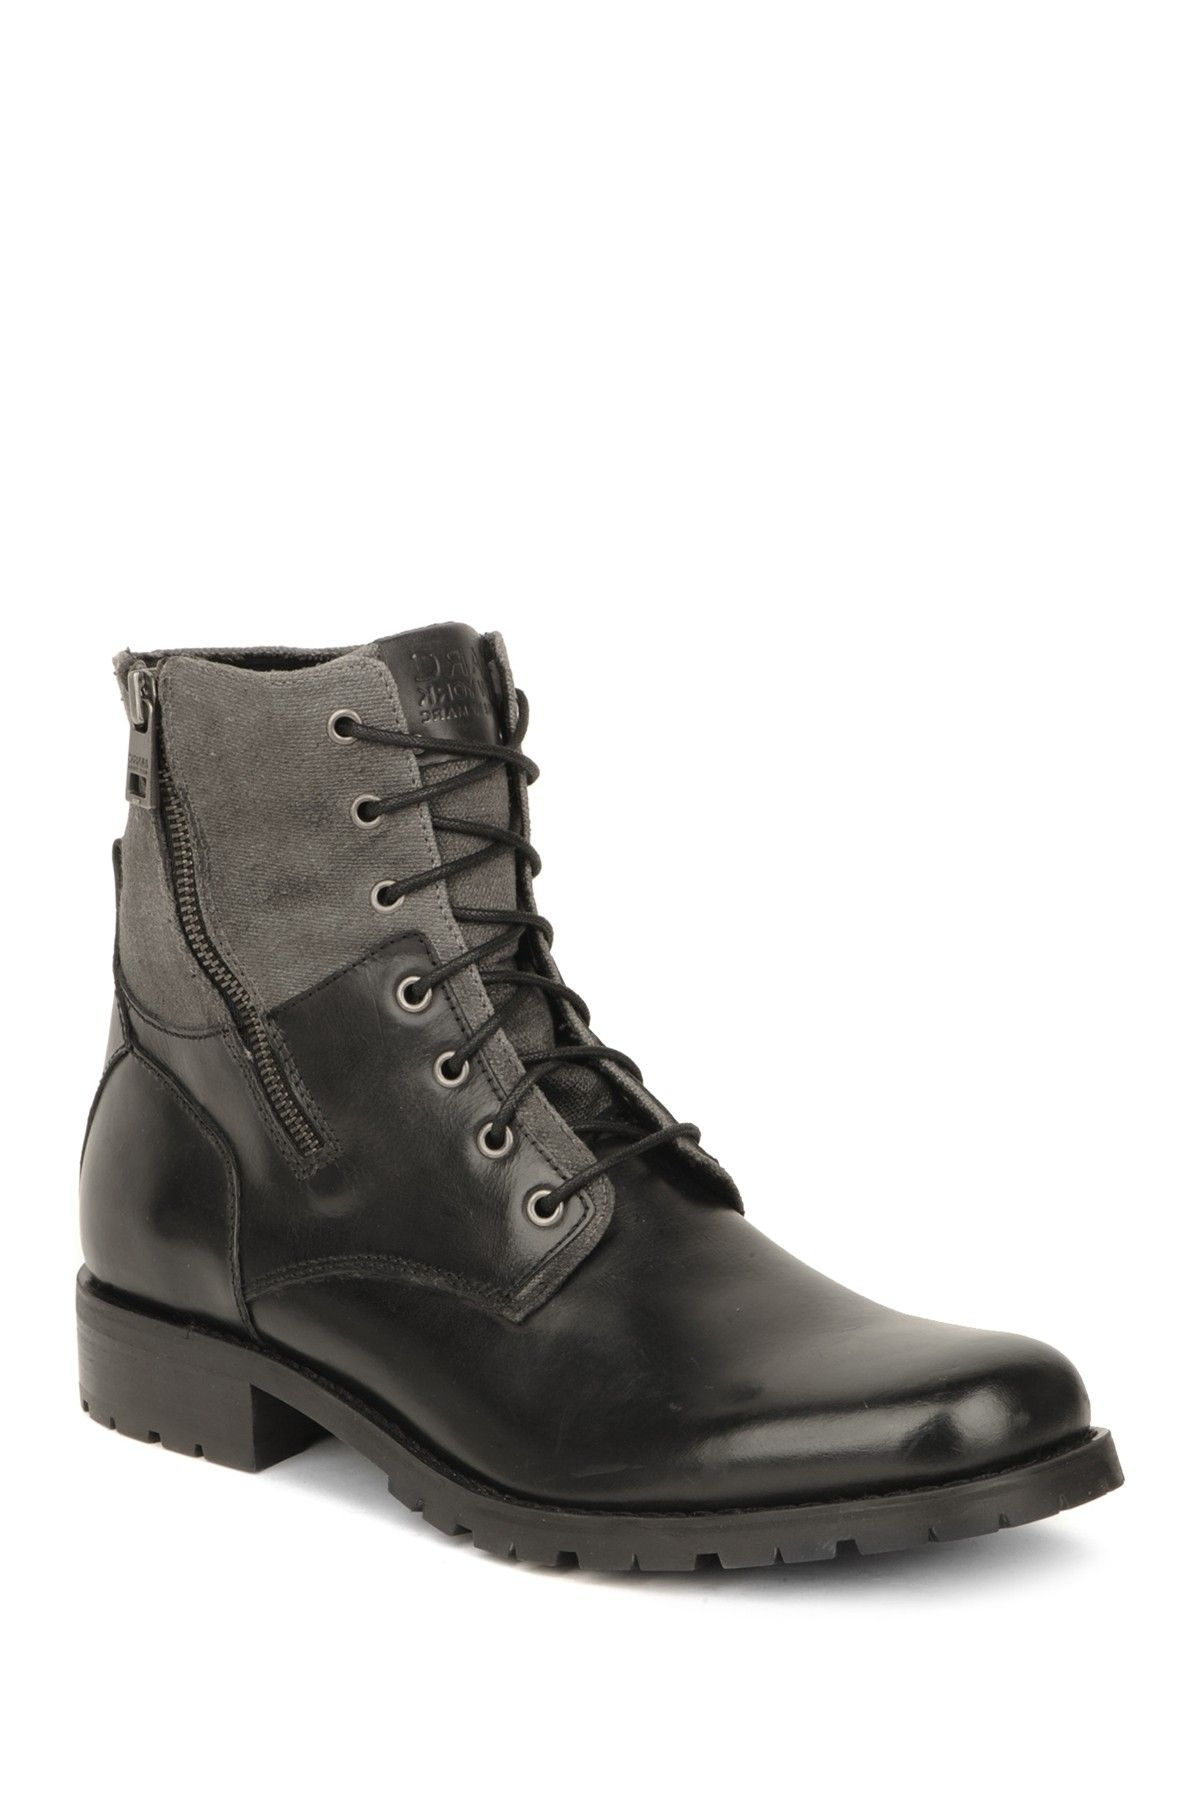 Pinterest Vesey Boot York Grunge 90s New Marc amp; Fashion nUOcw6xW